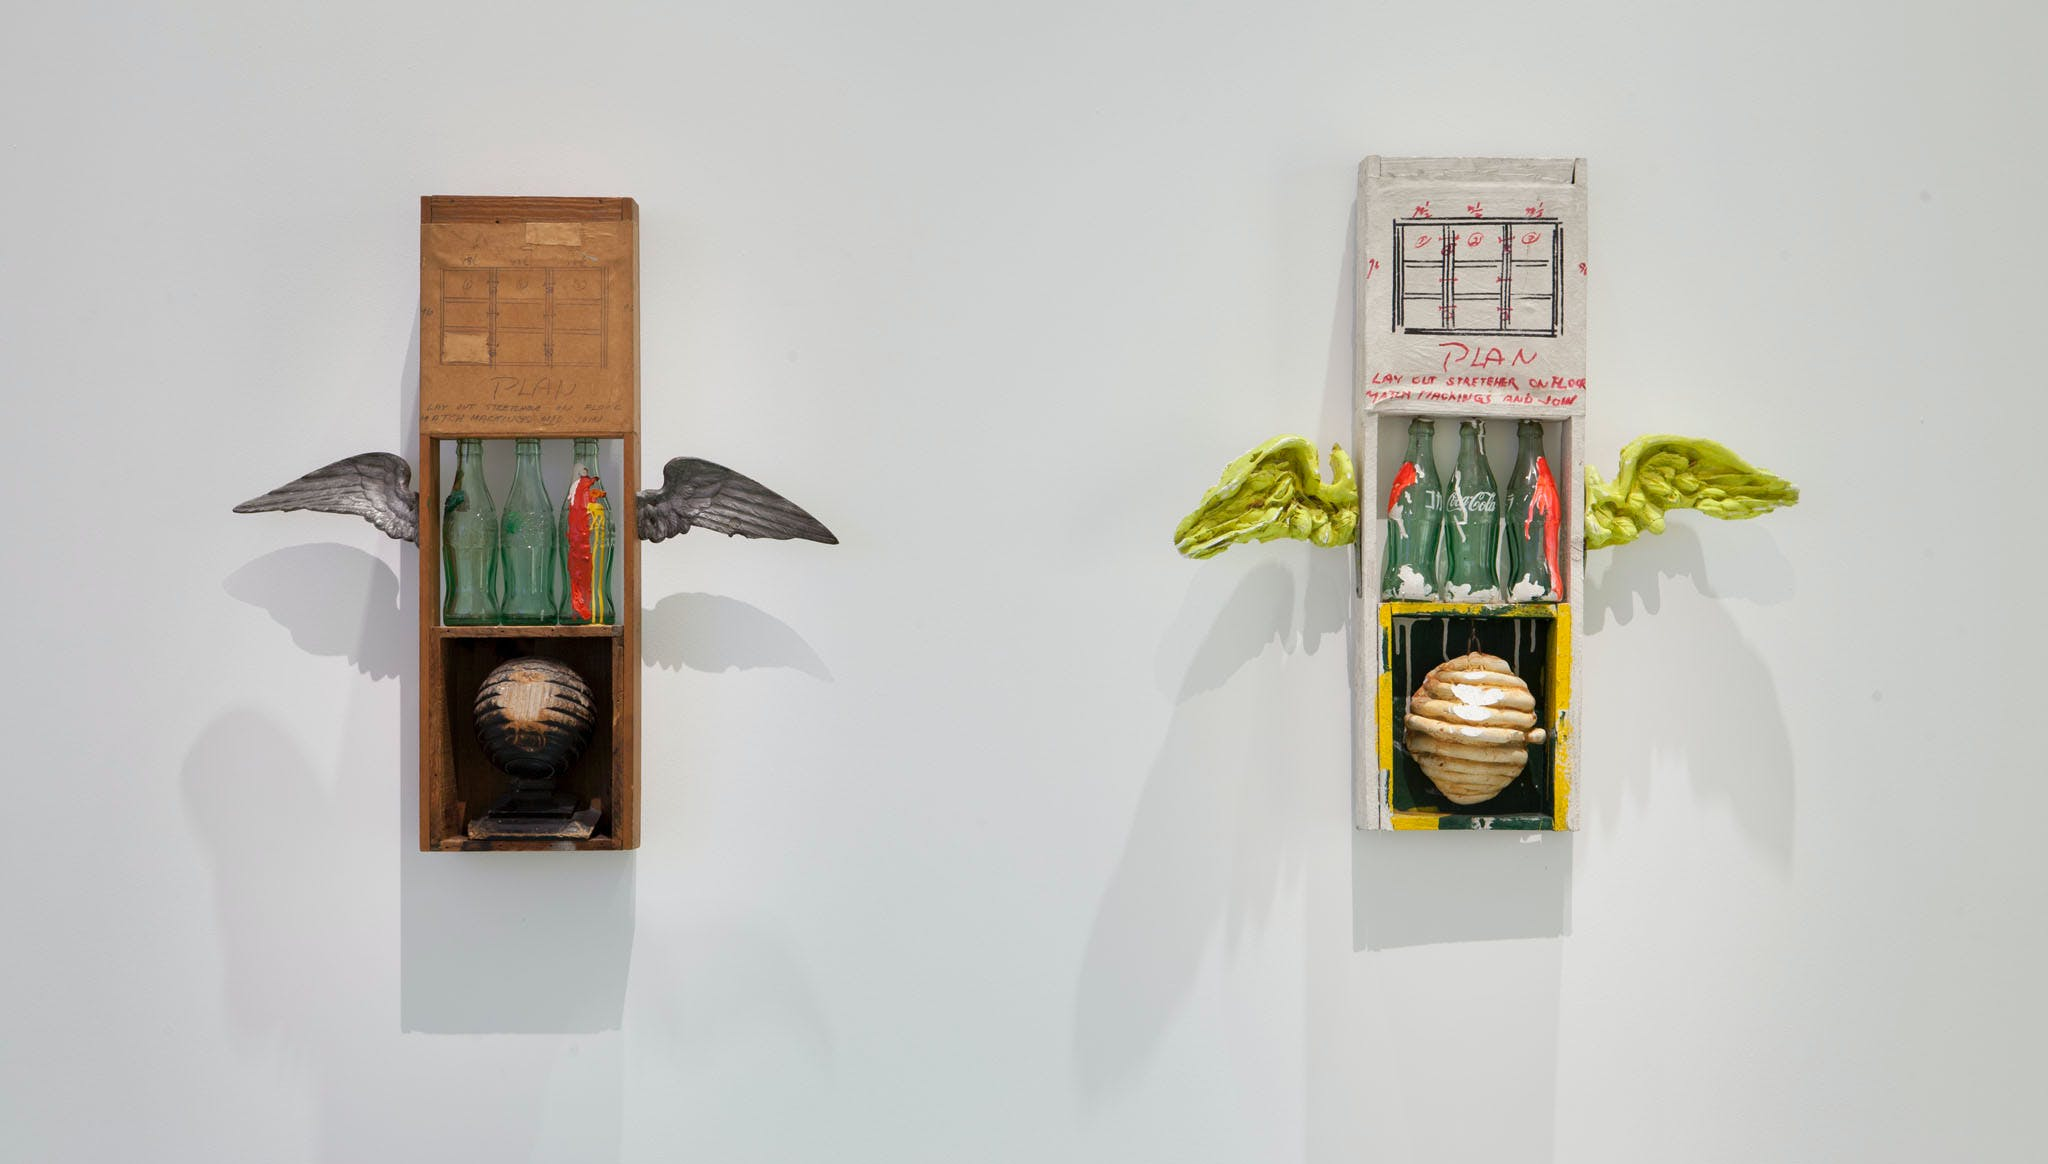 View of the exhibition International Pop, 2015; (left to right): Robert Rauschenberg, Coca-Cola Plan, 1958; Shinohara Ushio, Coca-Cola Plan, 1964